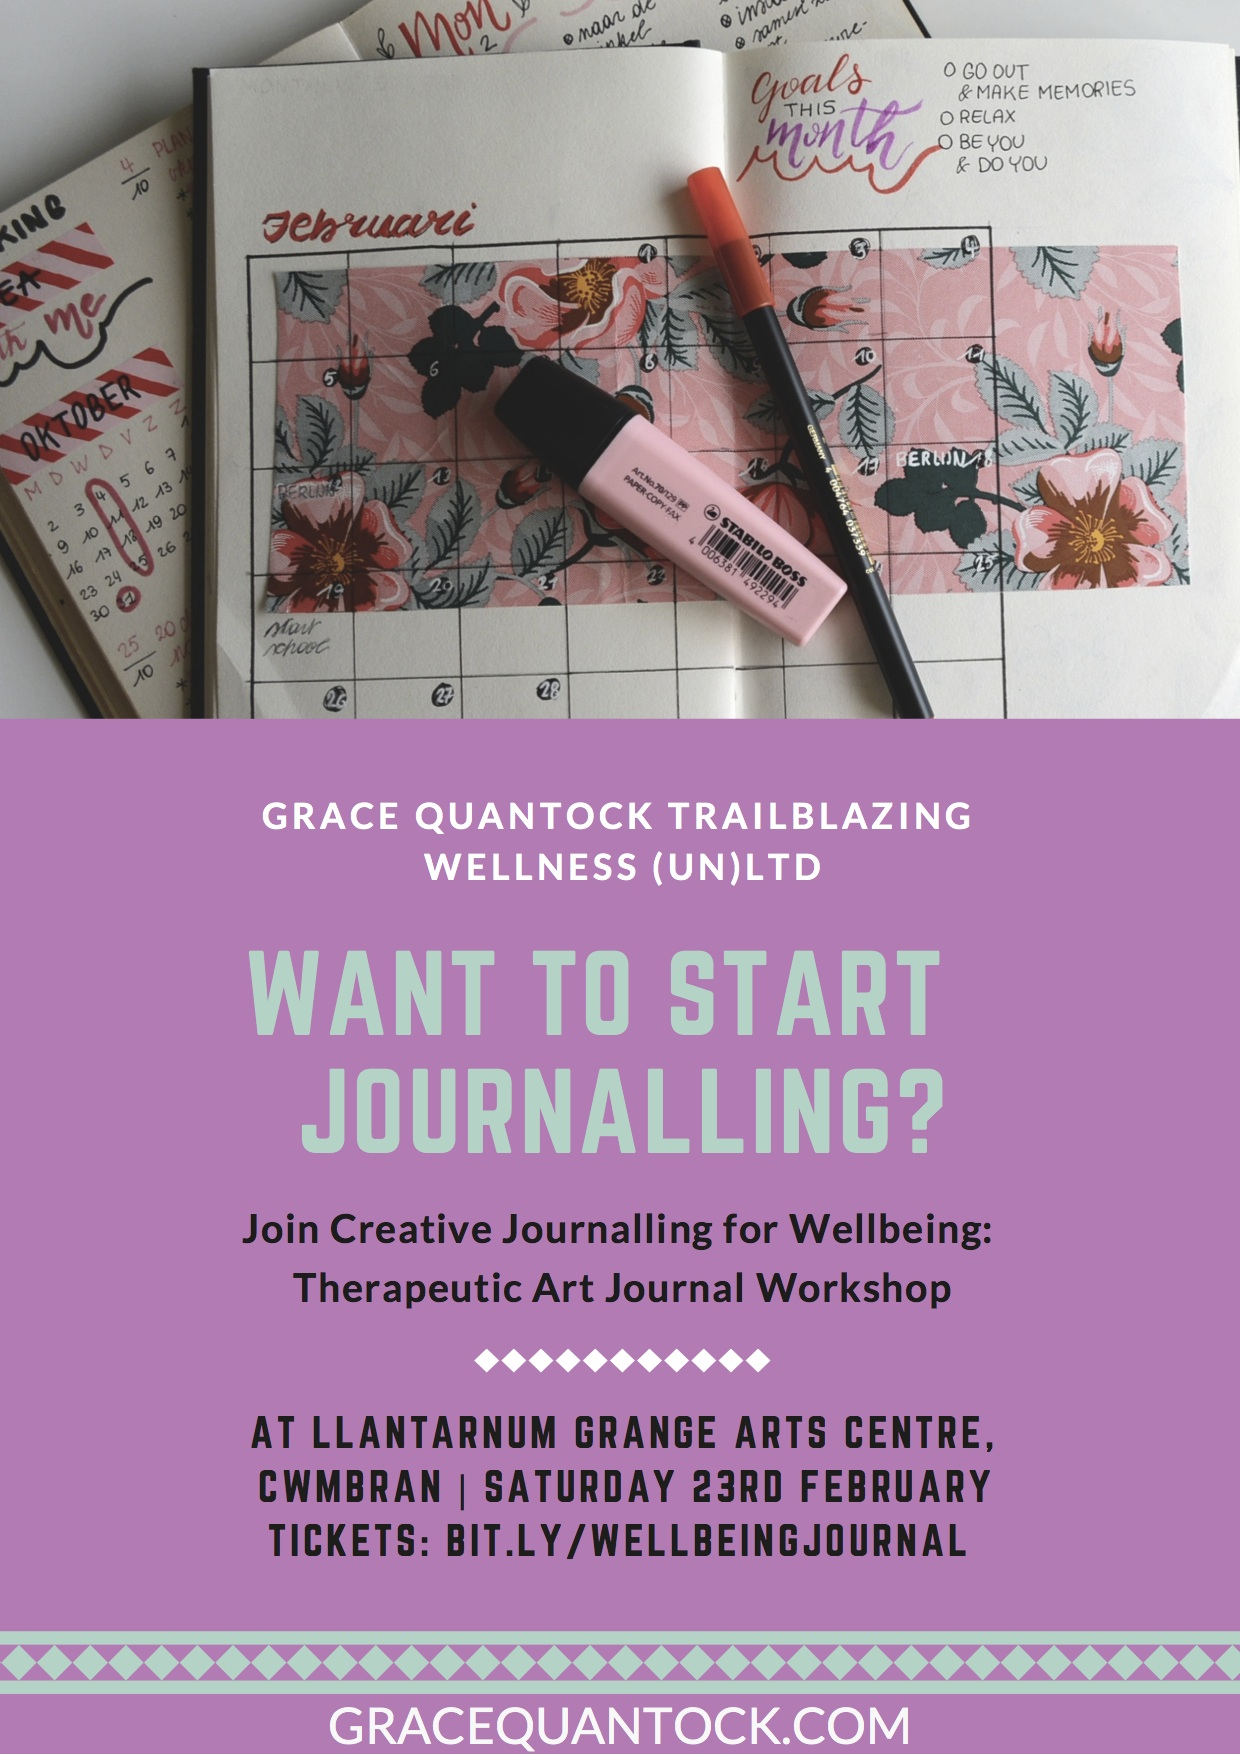 Creative Journalling for Wellbeing: Therapeutic Art Journal Workshop